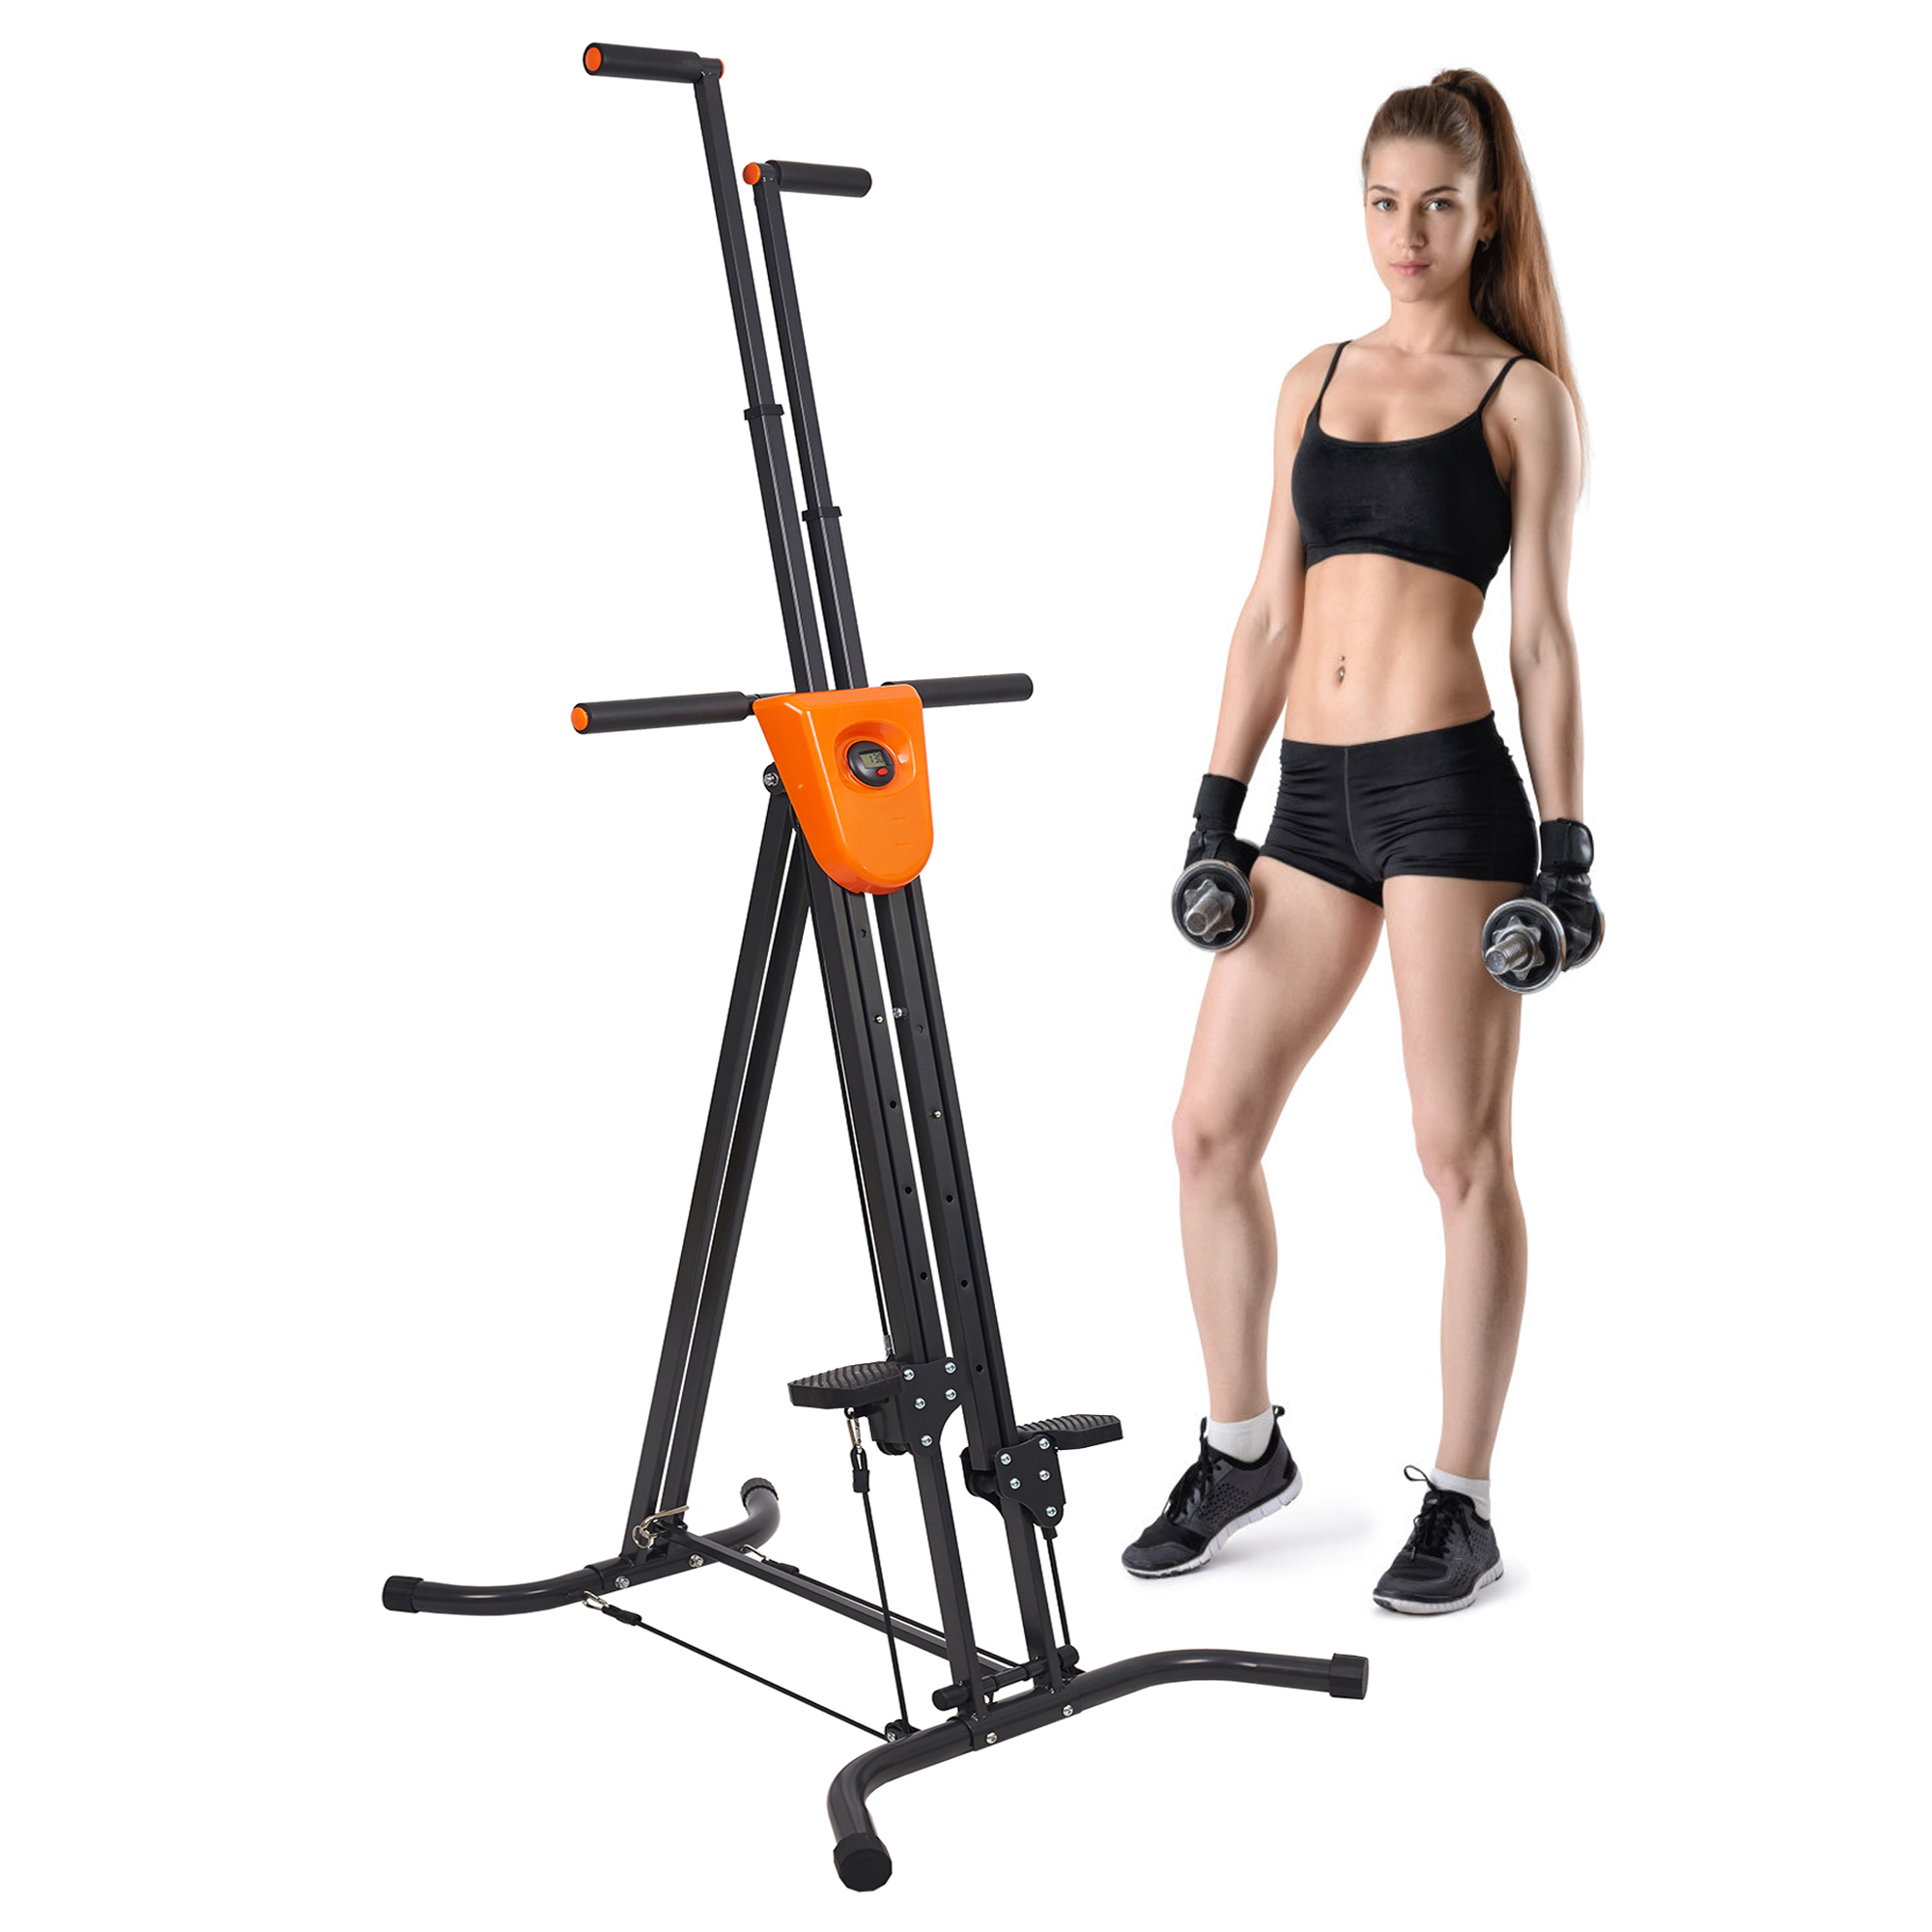 KARMAS PRODUCT Vertical Climber Stair Climber Exercise Climbing Machine Home Gym Fitness Folding Stair Stepper Adjustable Height for Women Man Full Total Body Workout